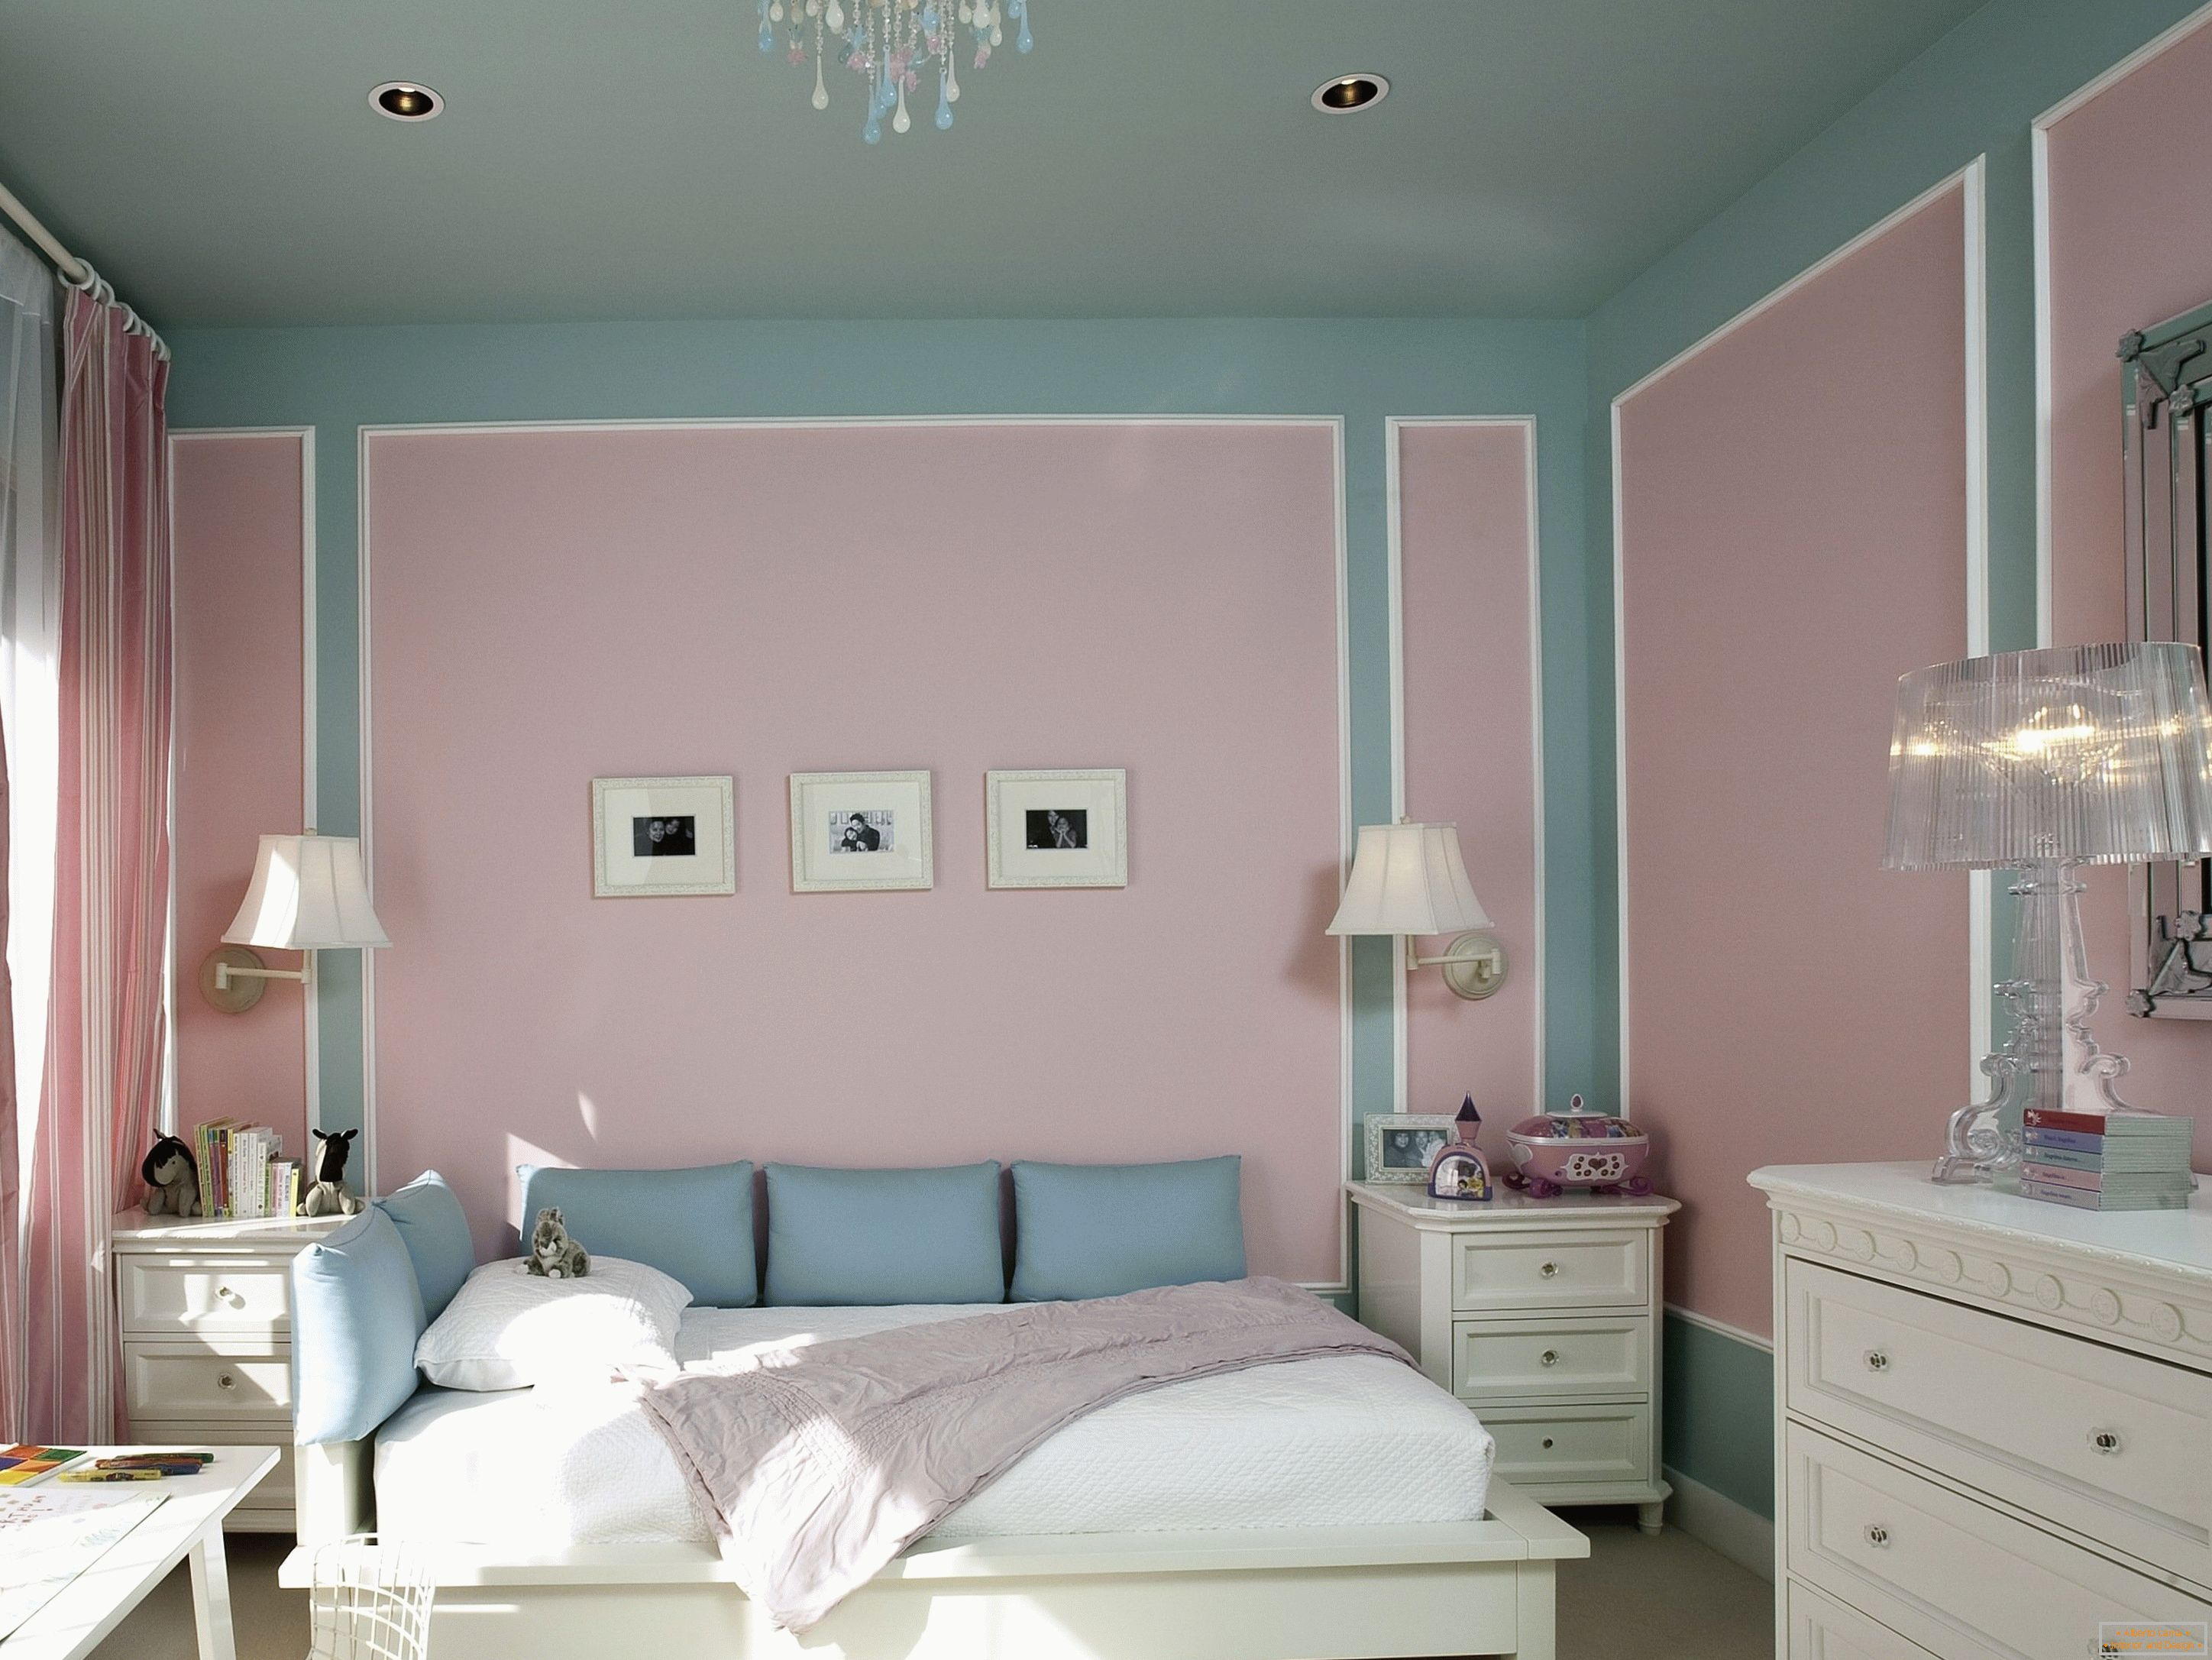 Painted walls in the bedroom